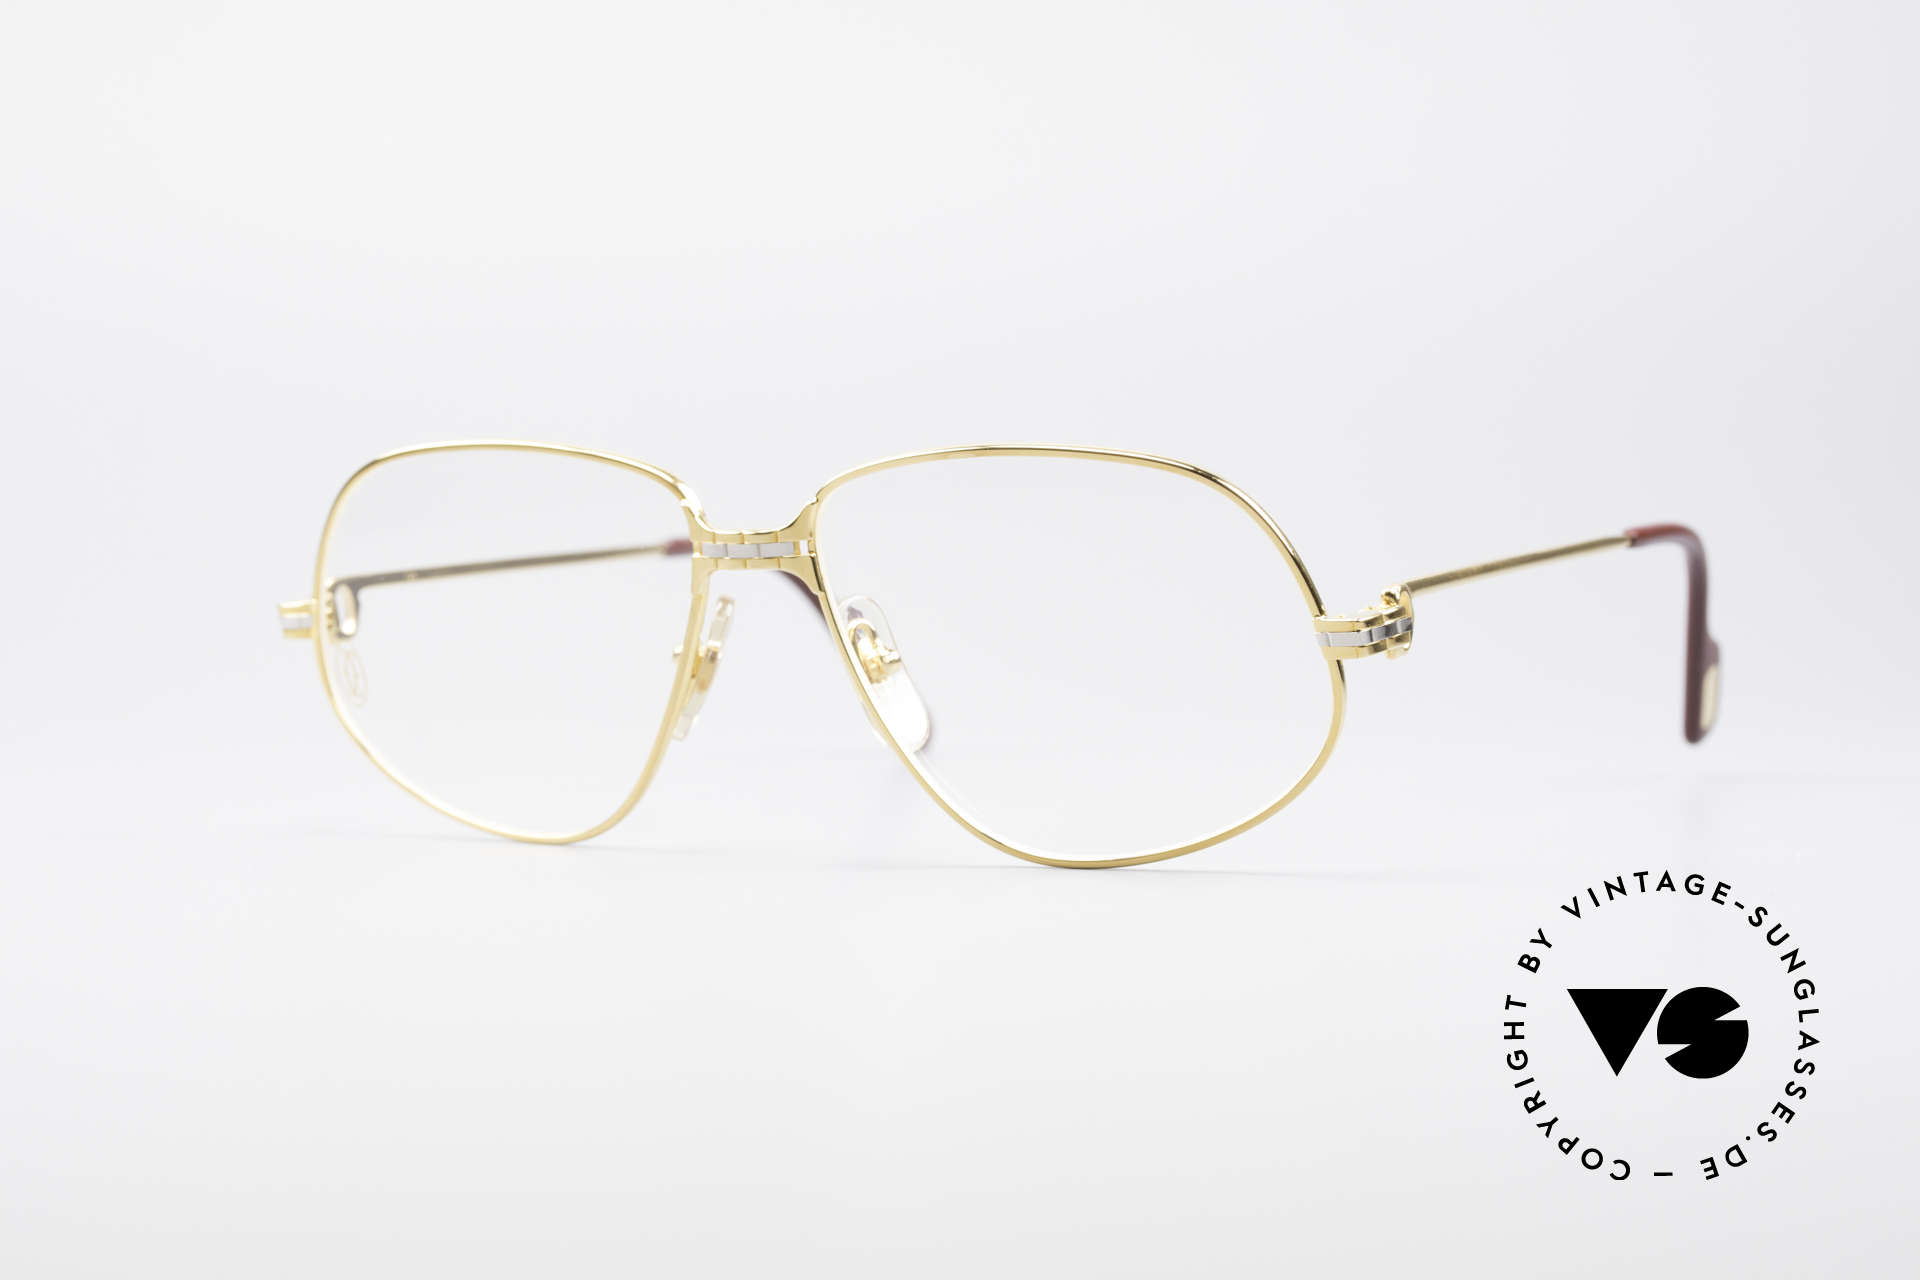 Cartier Panthere G.M. - M 80's Luxury Vintage Eyeglasses, Cartier Panthère = the world famous panther by CARTIER, Made for Men